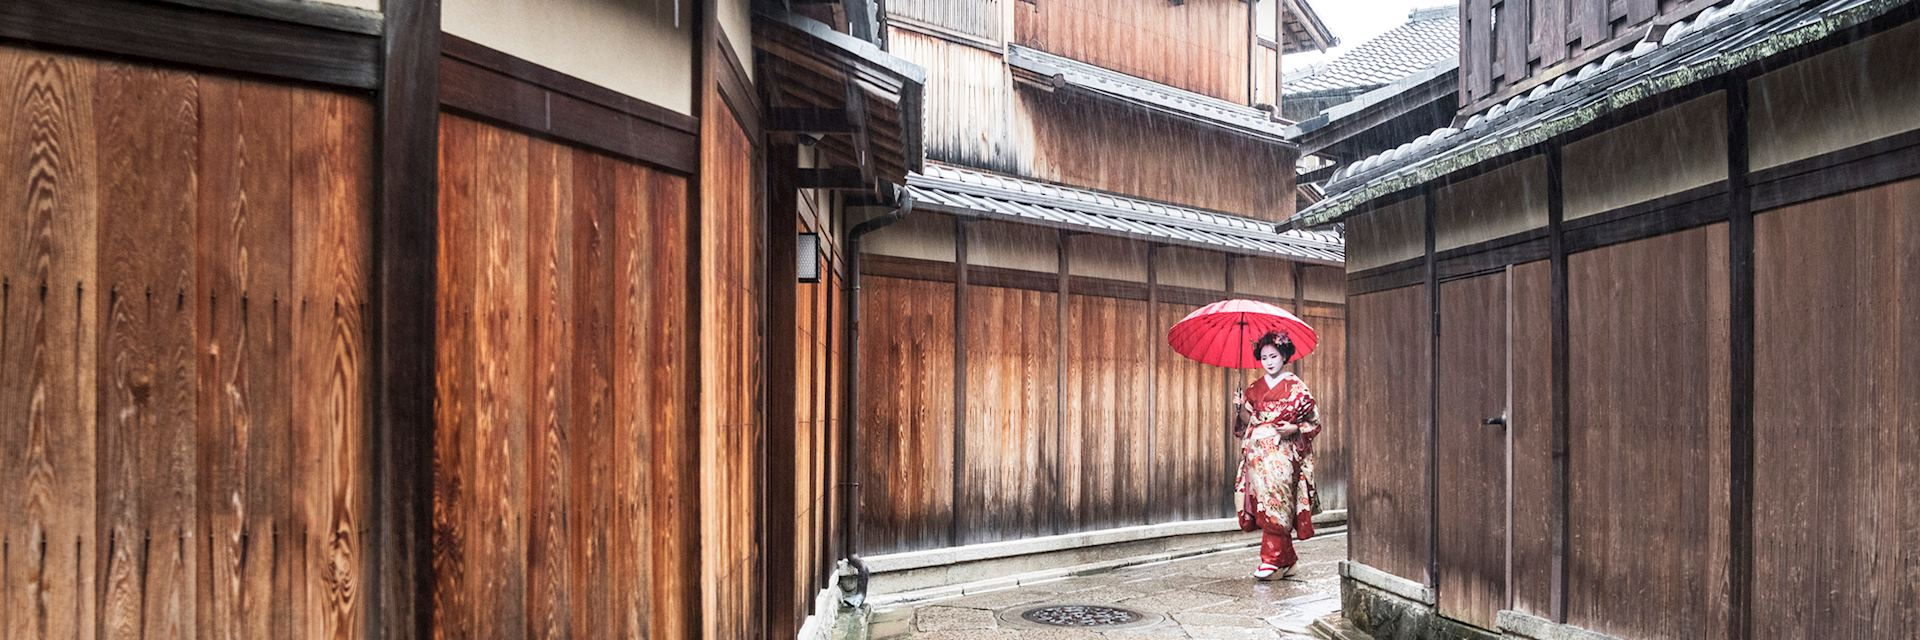 Geisha walking through a Japanese village